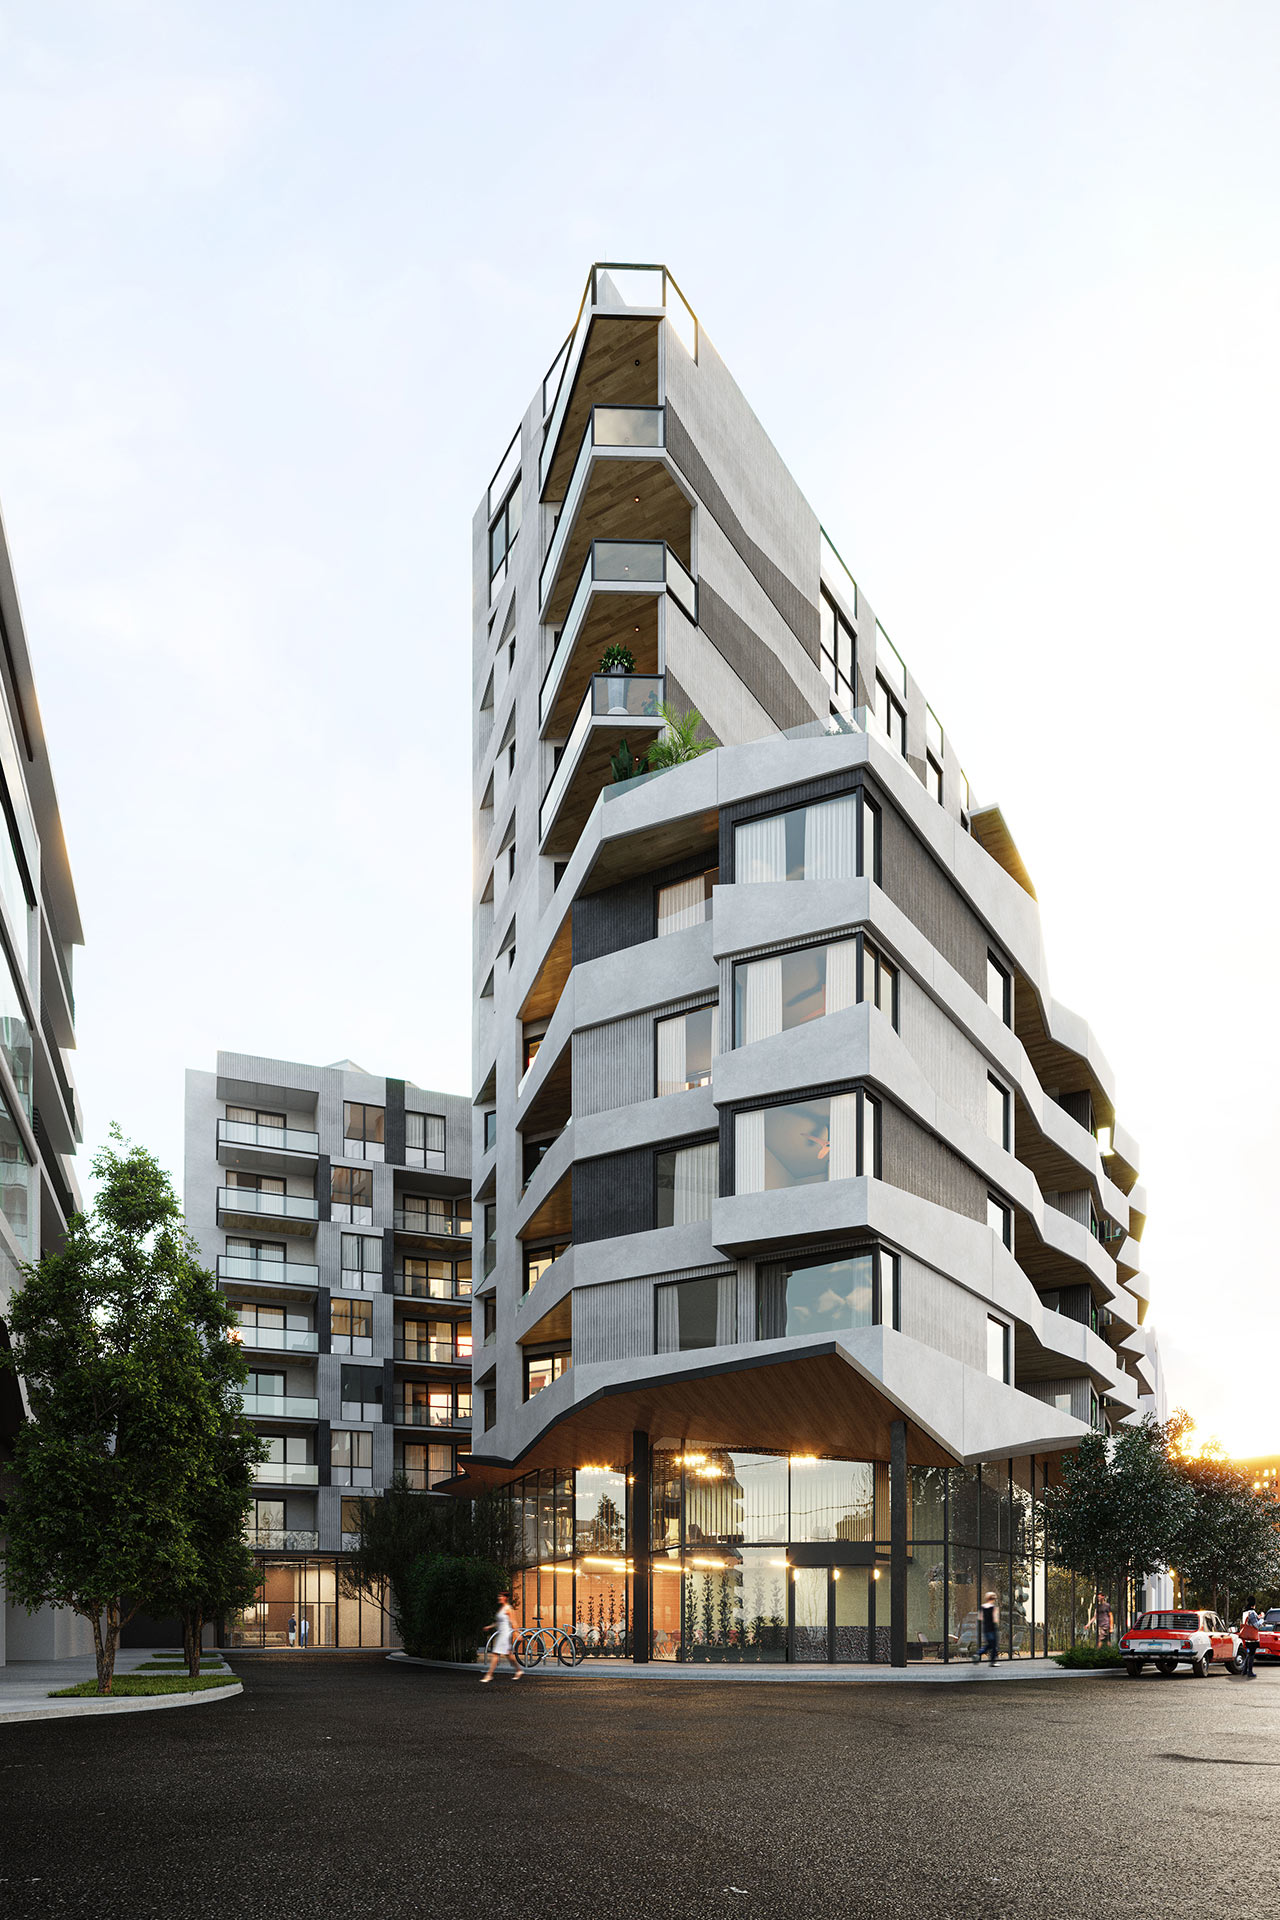 https://jamarchitects.com.au/wp-content/uploads/2021/07/JAM-Projects-Ford01-1280x1920-1.jpg